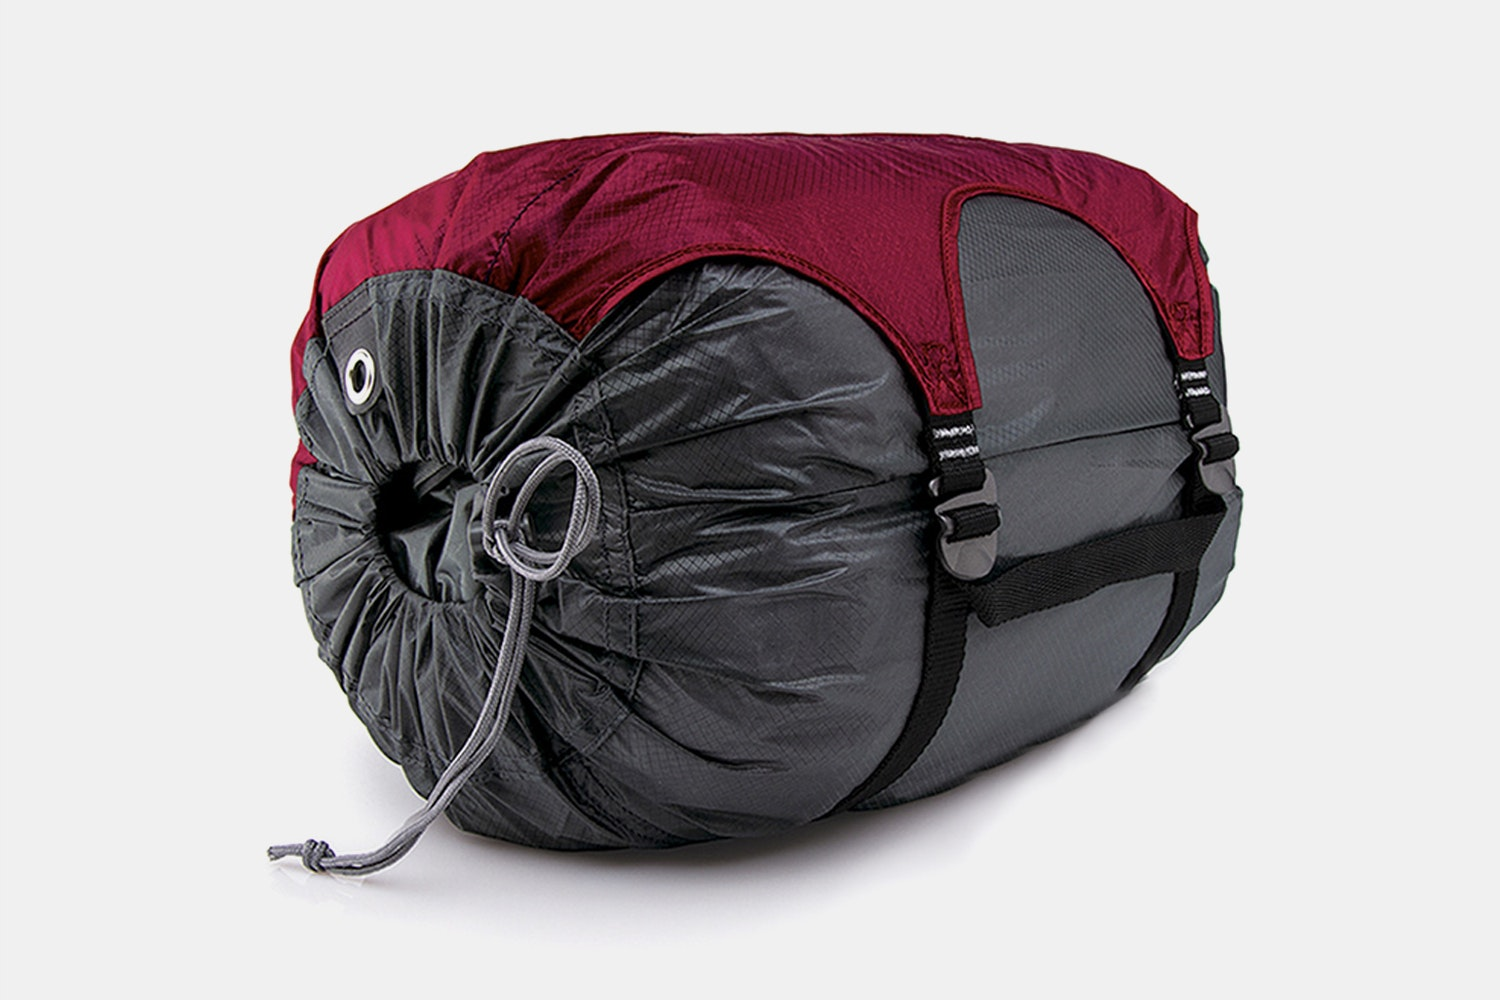 Gobi Gear SegSac Traveler